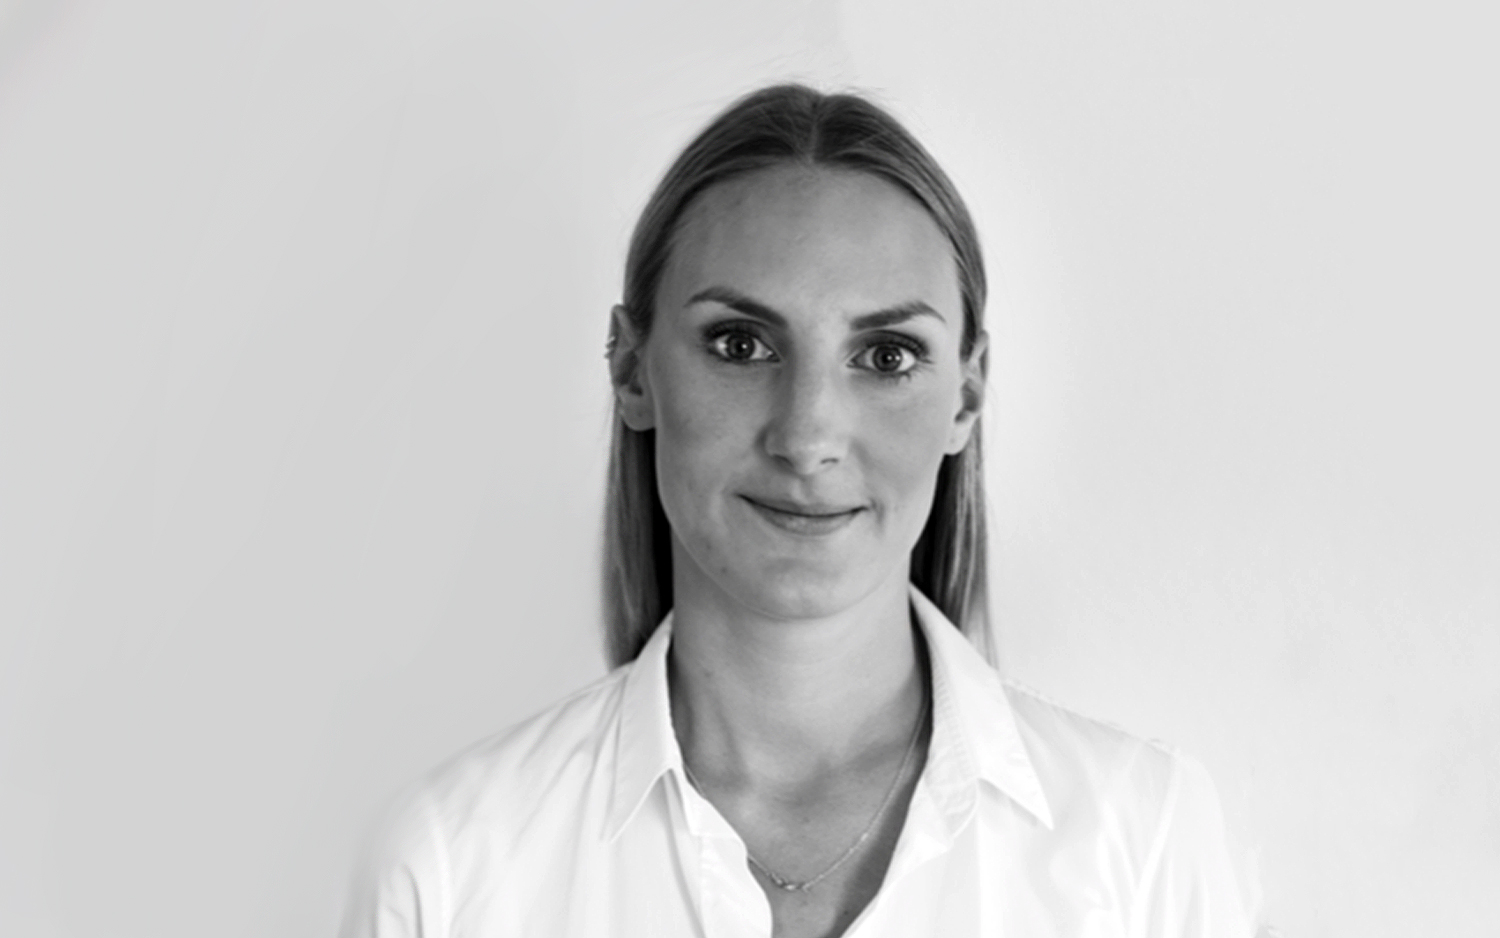 Antonia Werner, curating and consulting at red onion